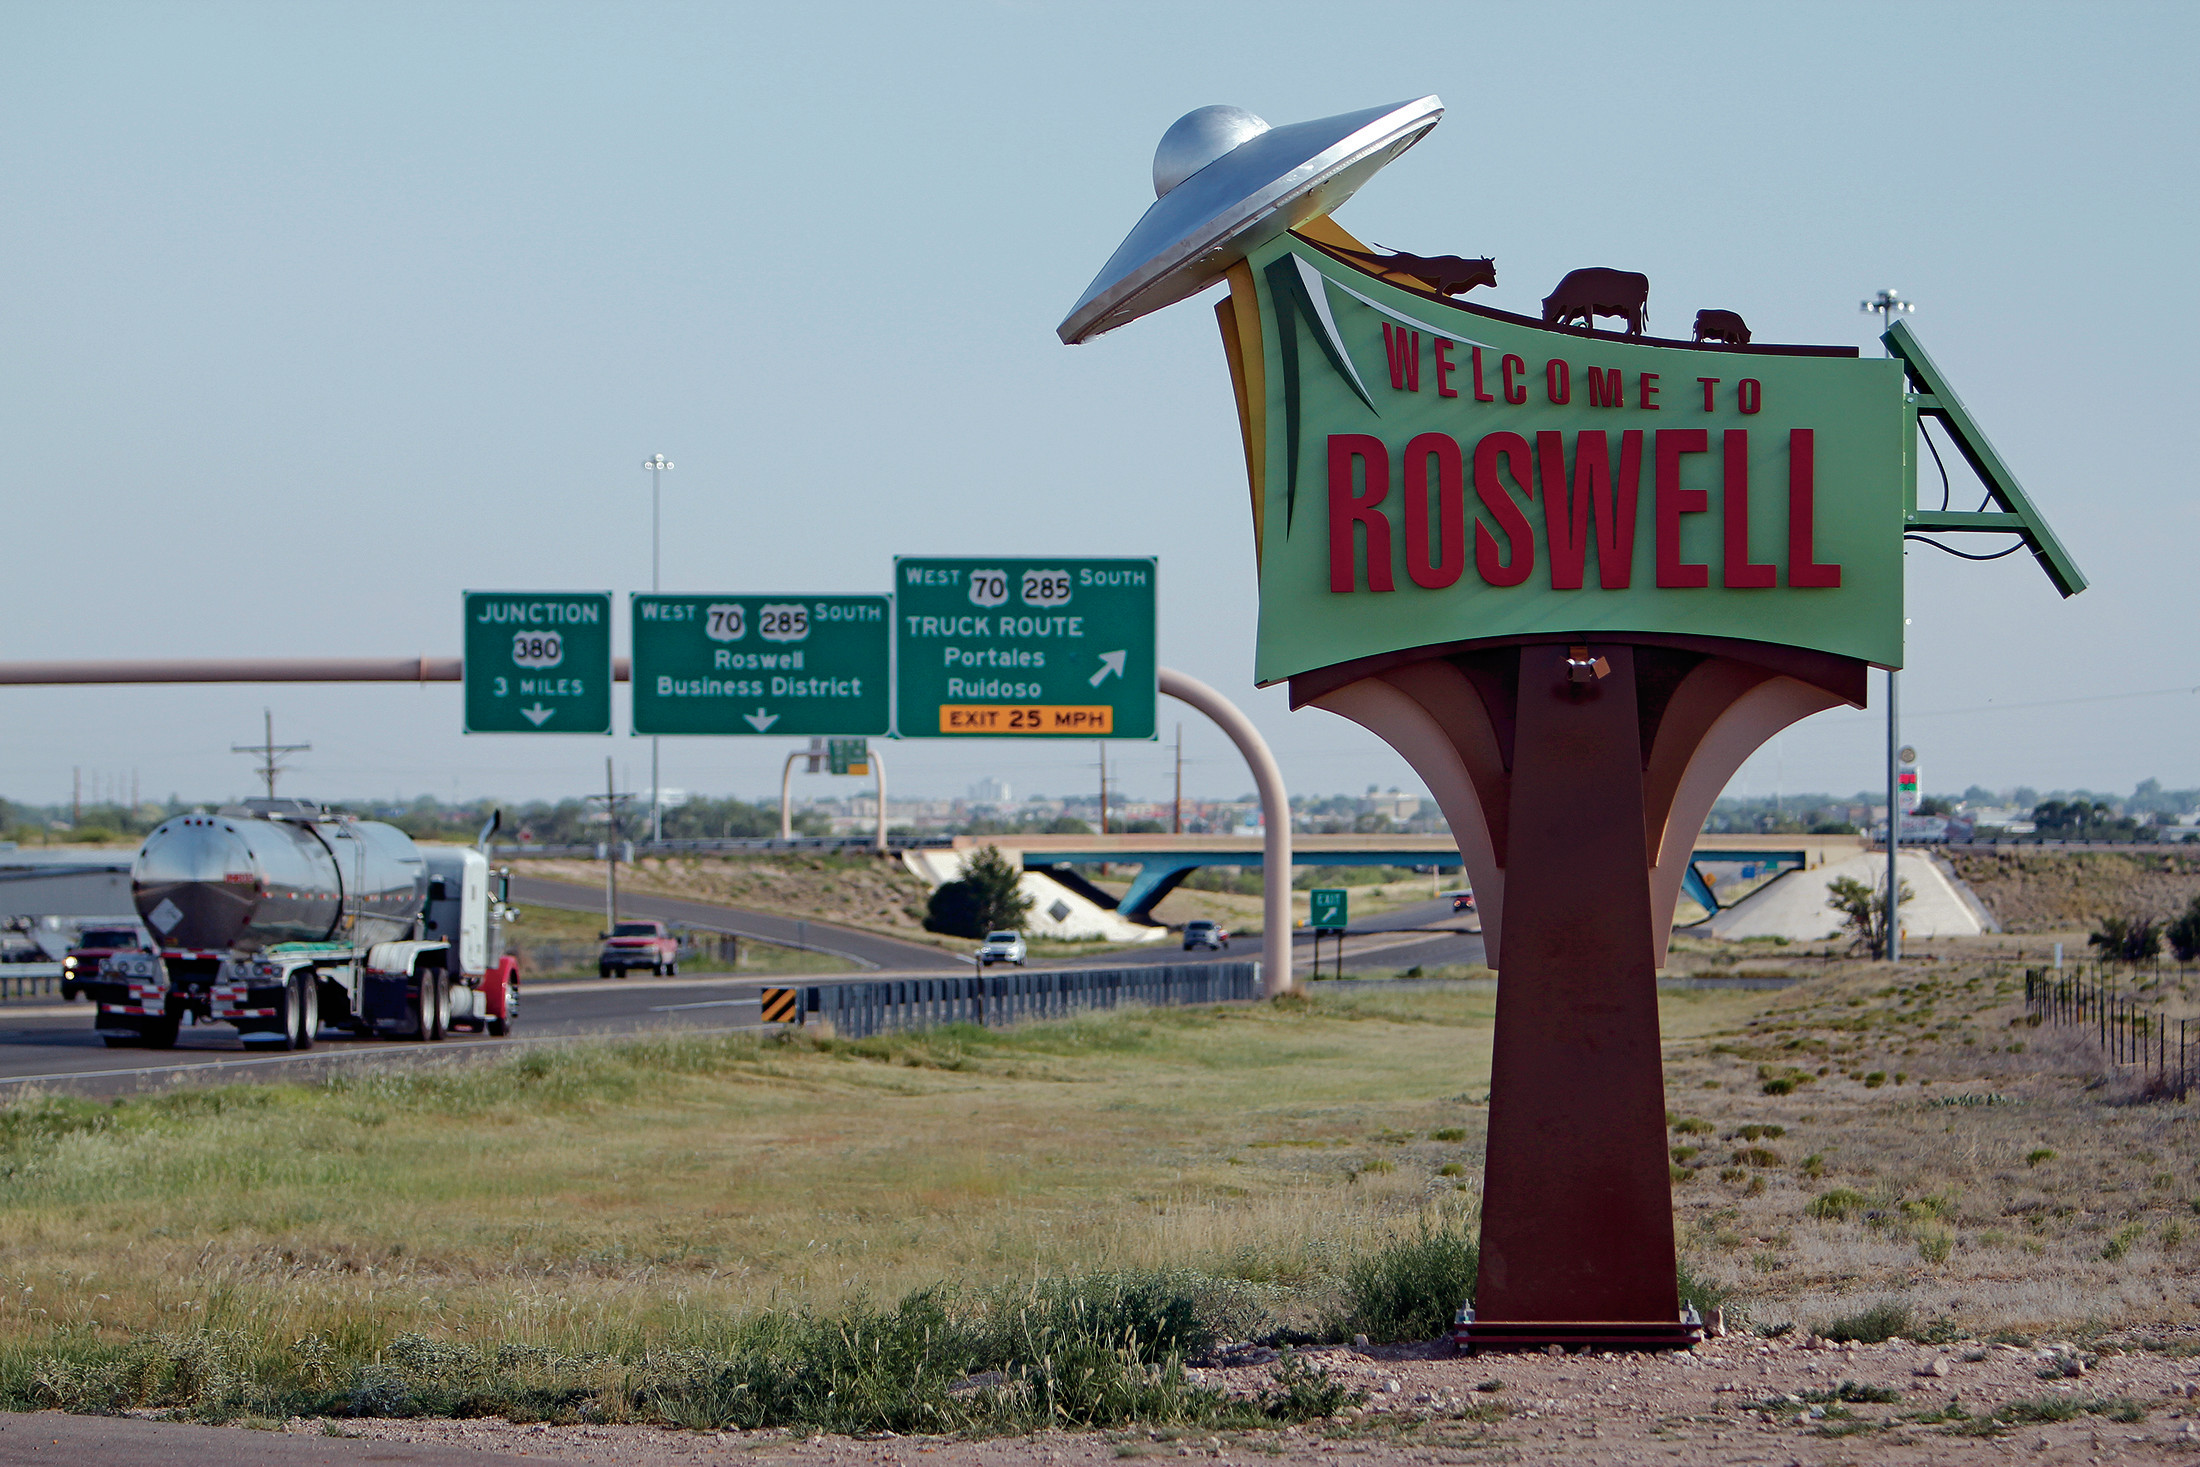 Roswell is about believing' | The Taos News